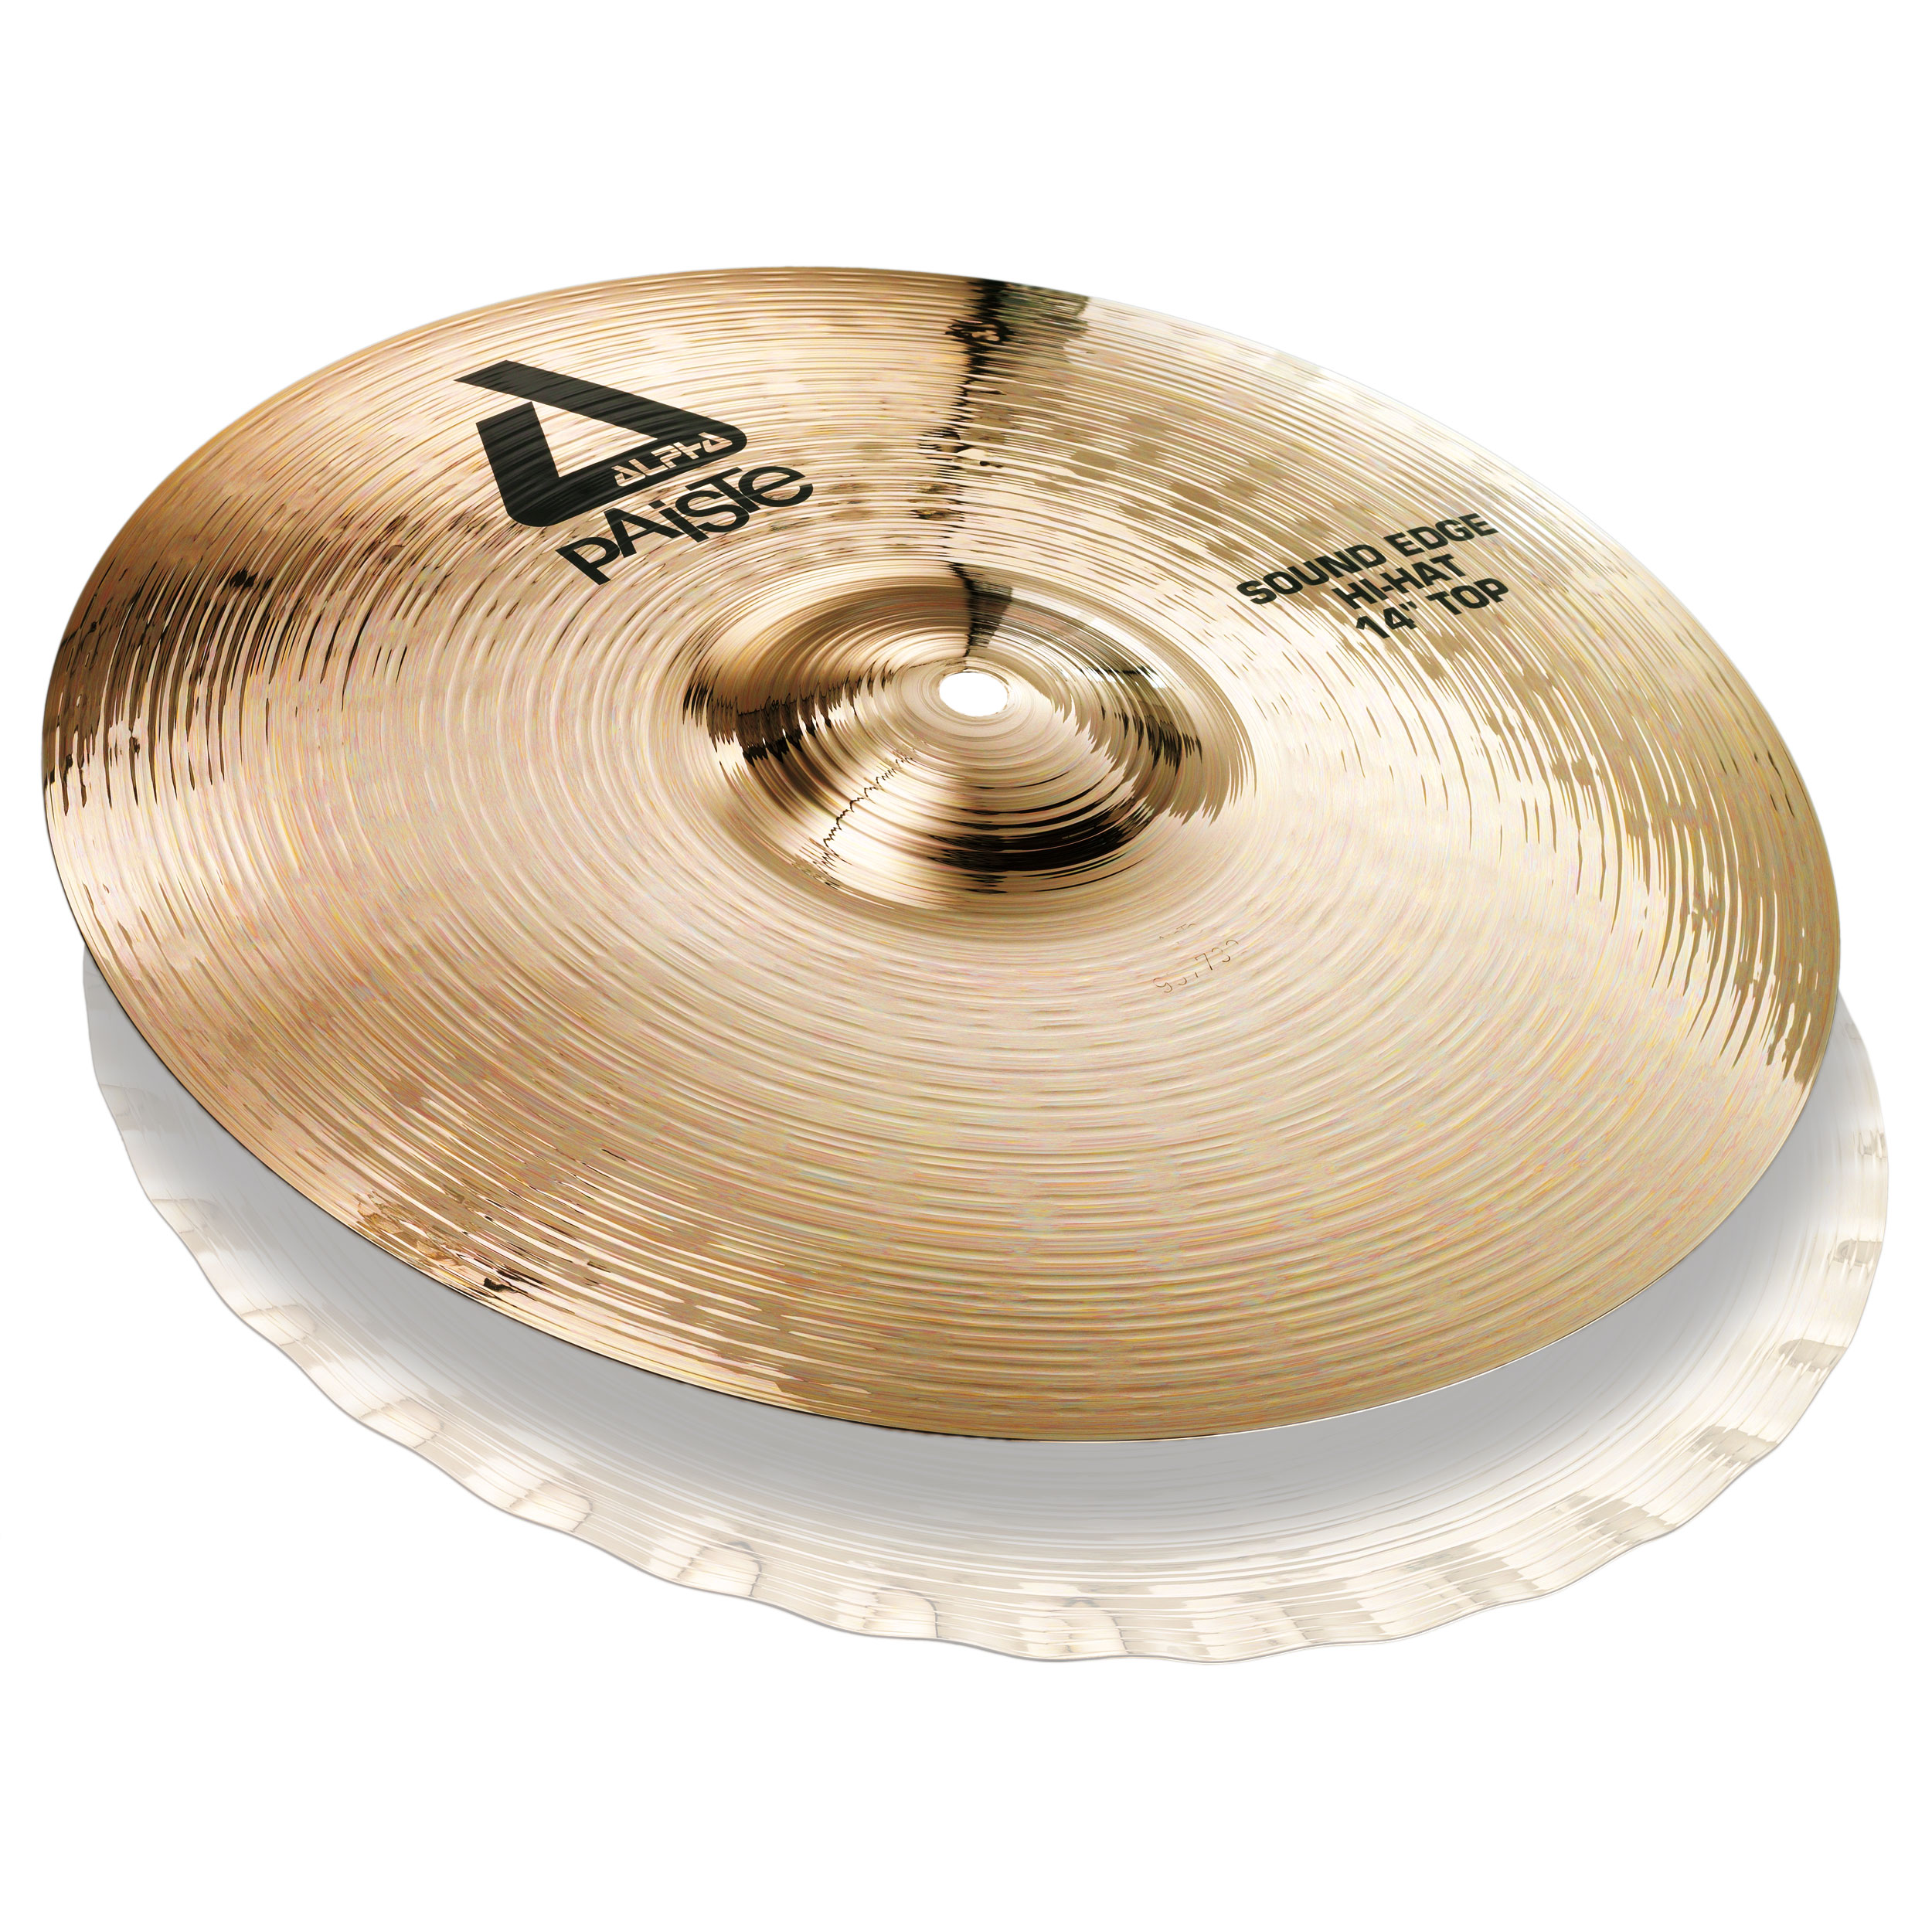 "Paiste 14"" Alpha B Sound Edge Hi Hat Top Cymbal"